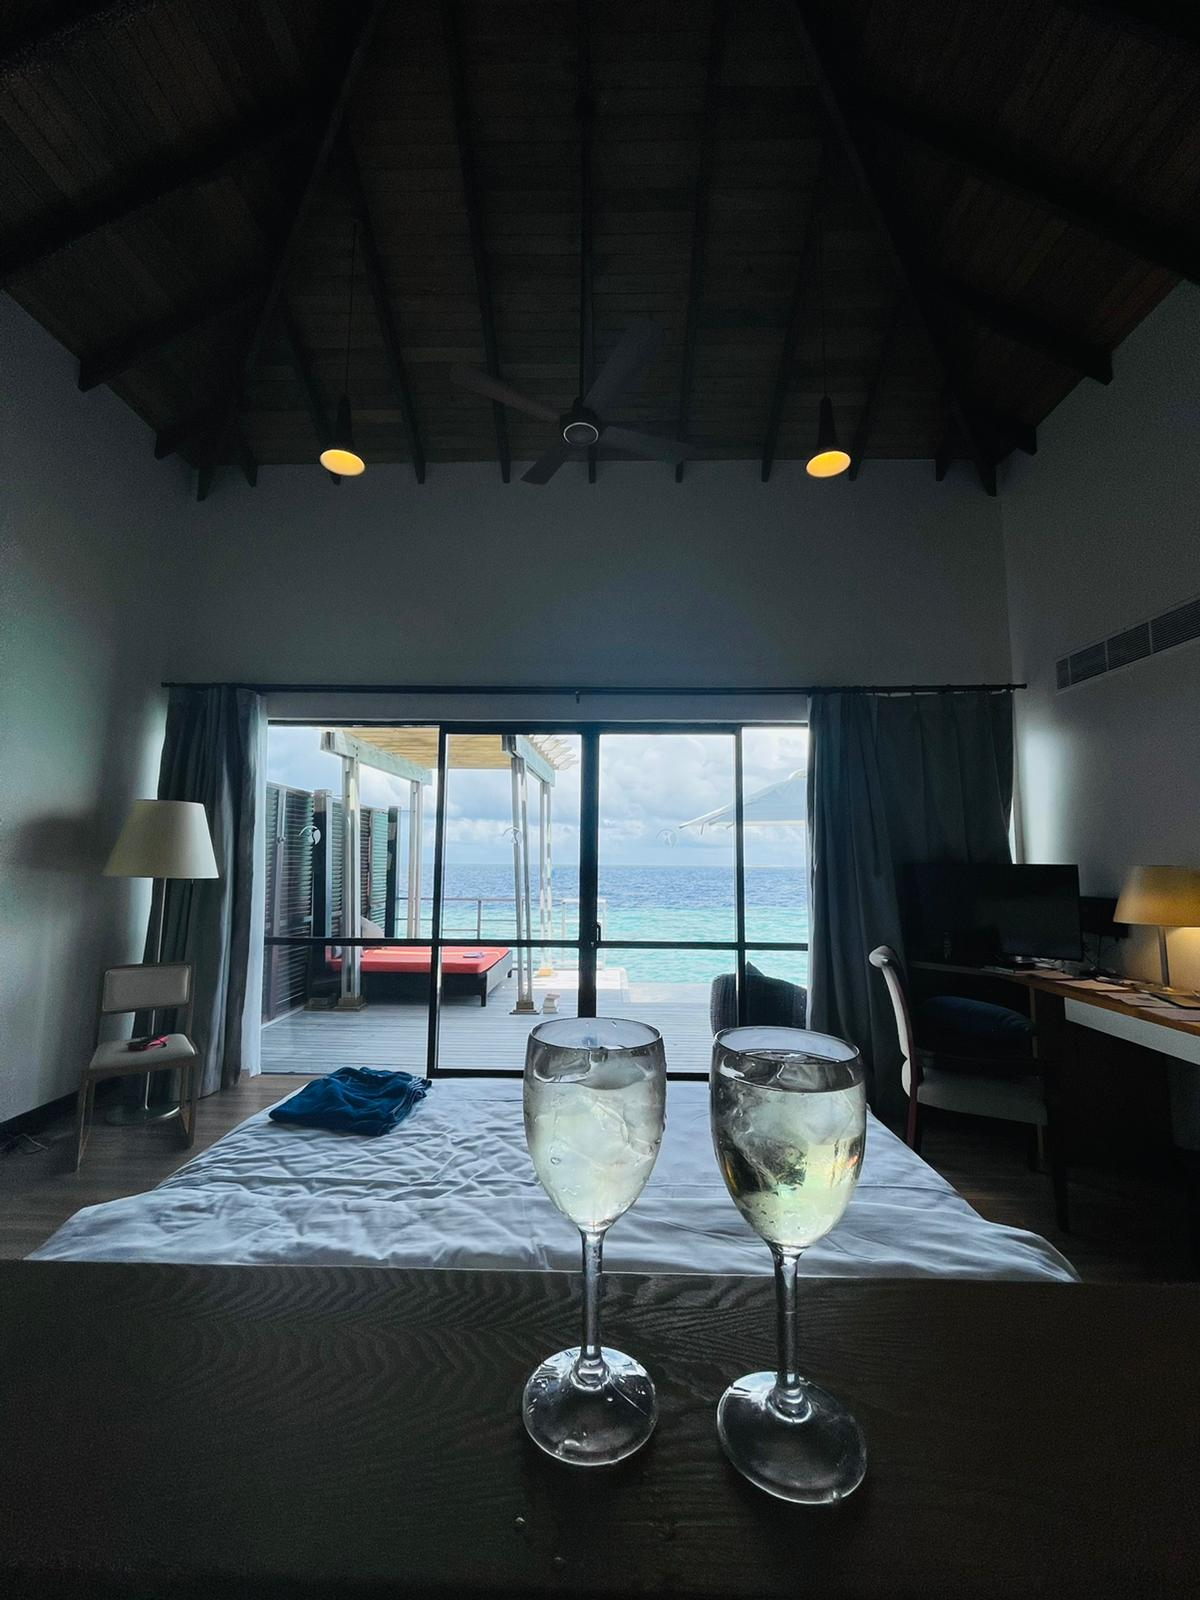 Why is ROBINSON Maldives The Ideal Place to Stay While on The Island80